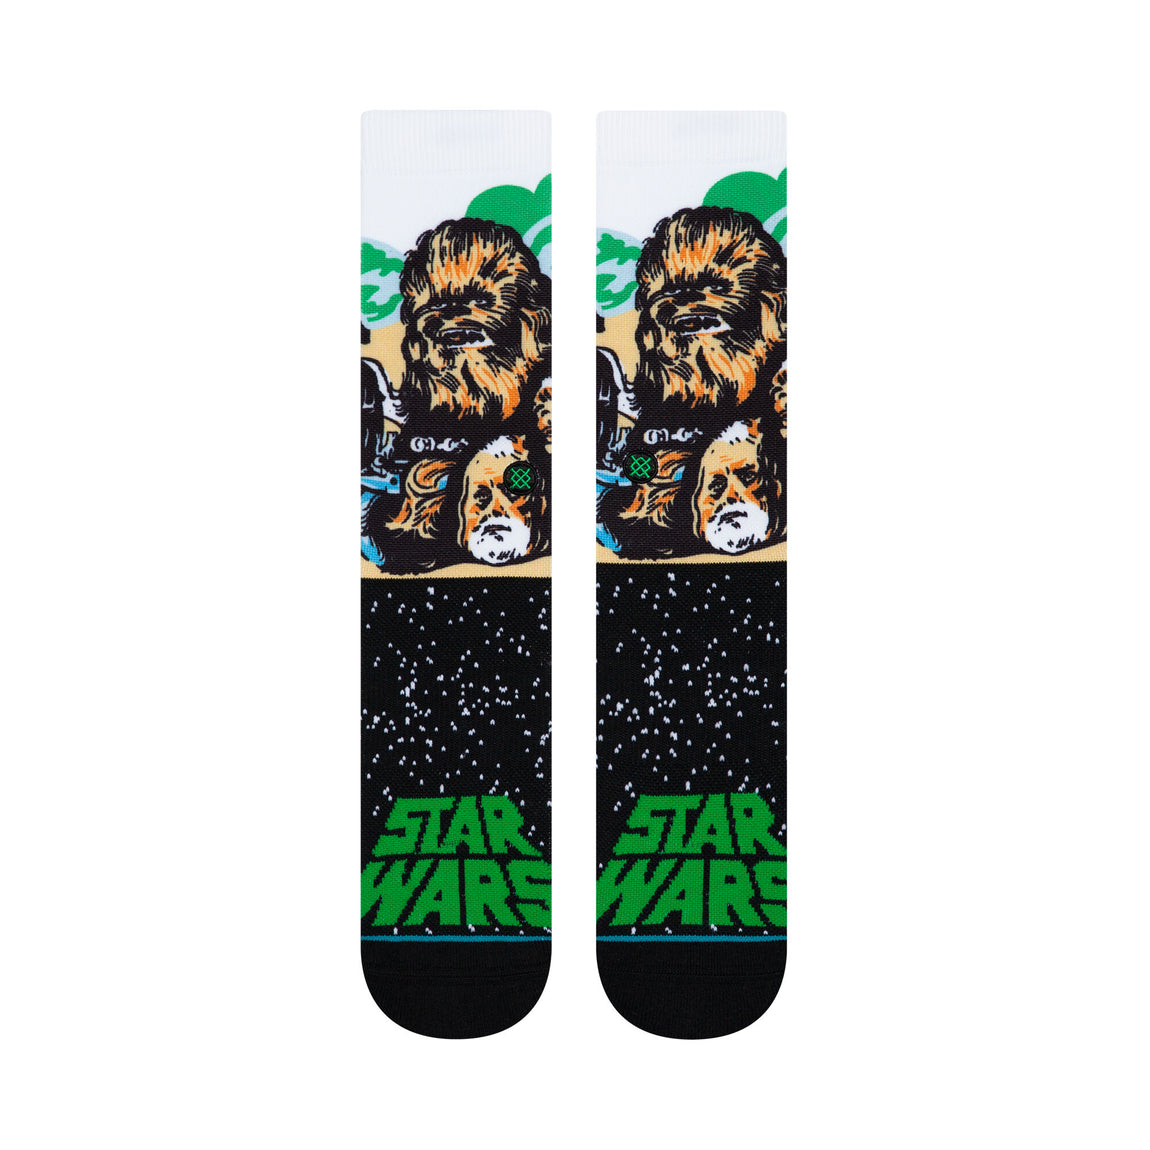 Stance X Star Wars Chewbacca Socks (Green) - Stance X Star Wars Chewbacca Socks (Green) -